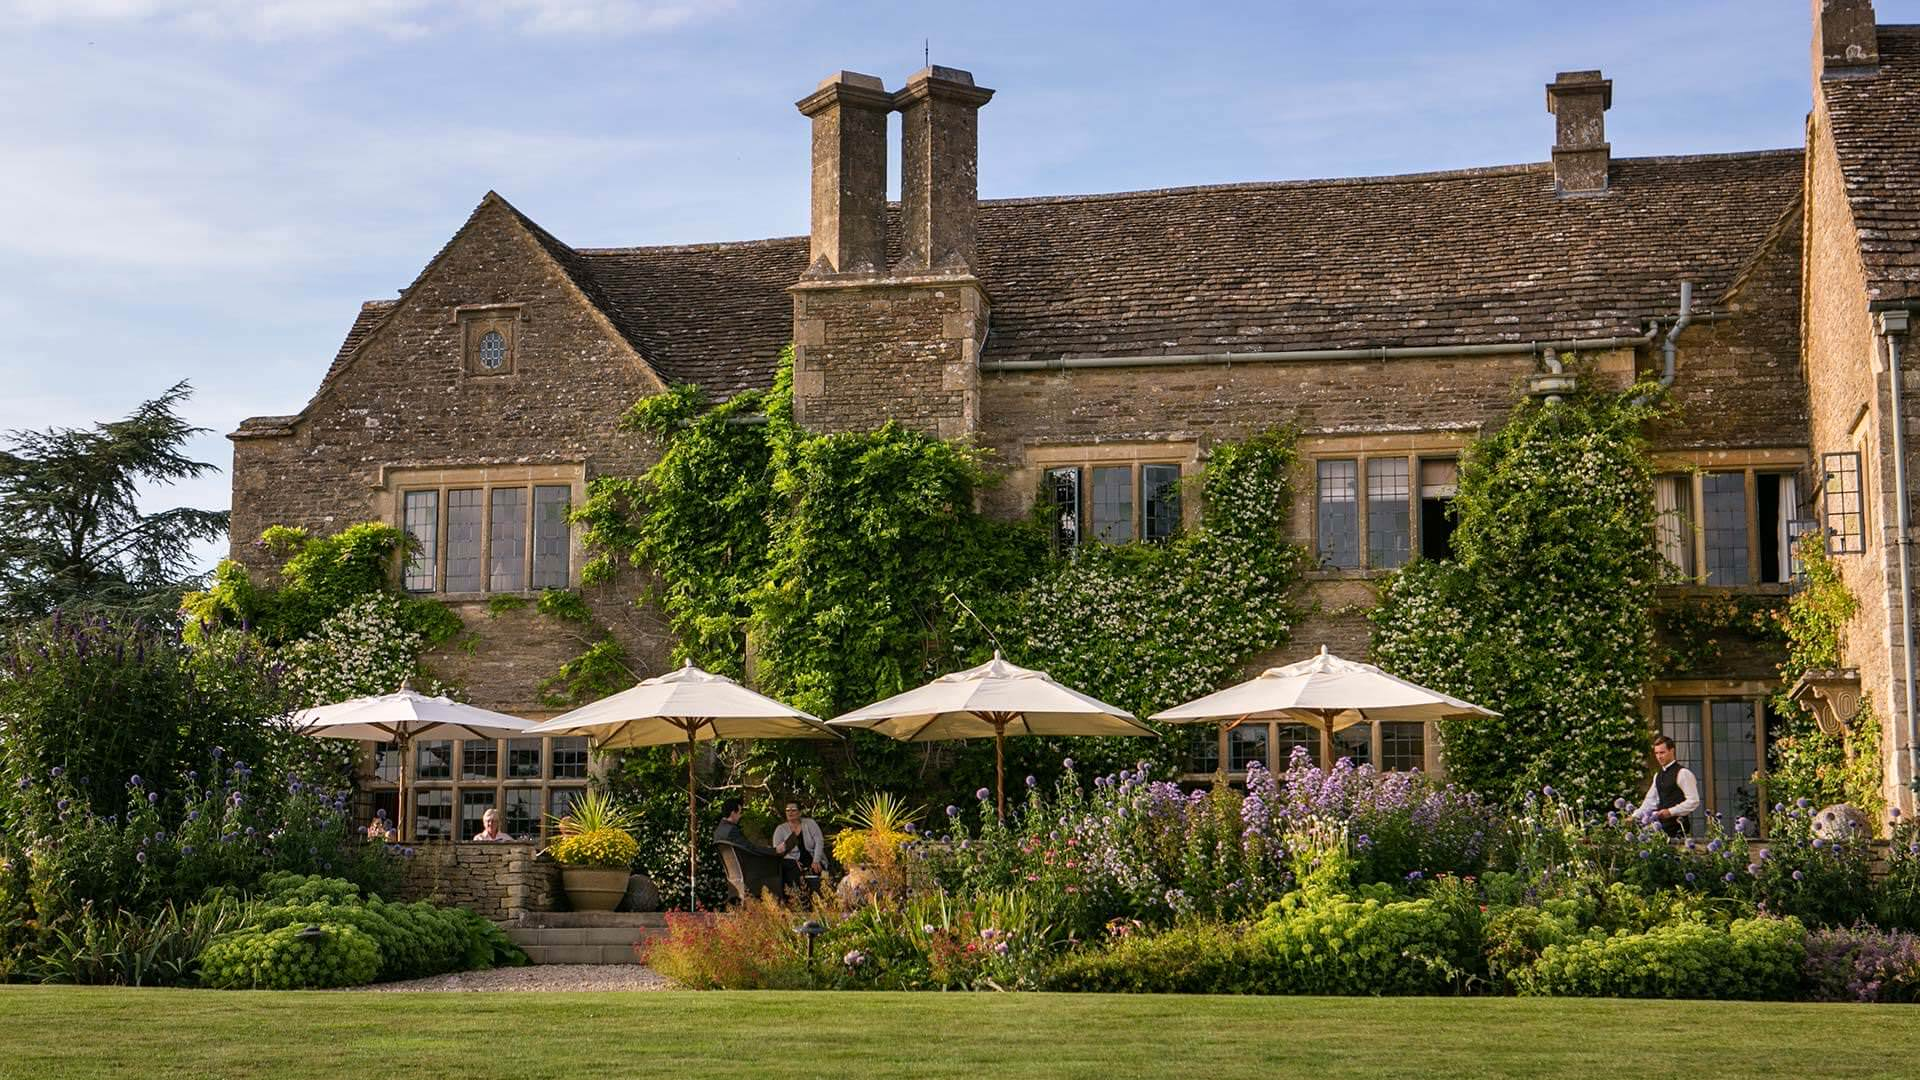 The Manor House Hotel Wiltshire